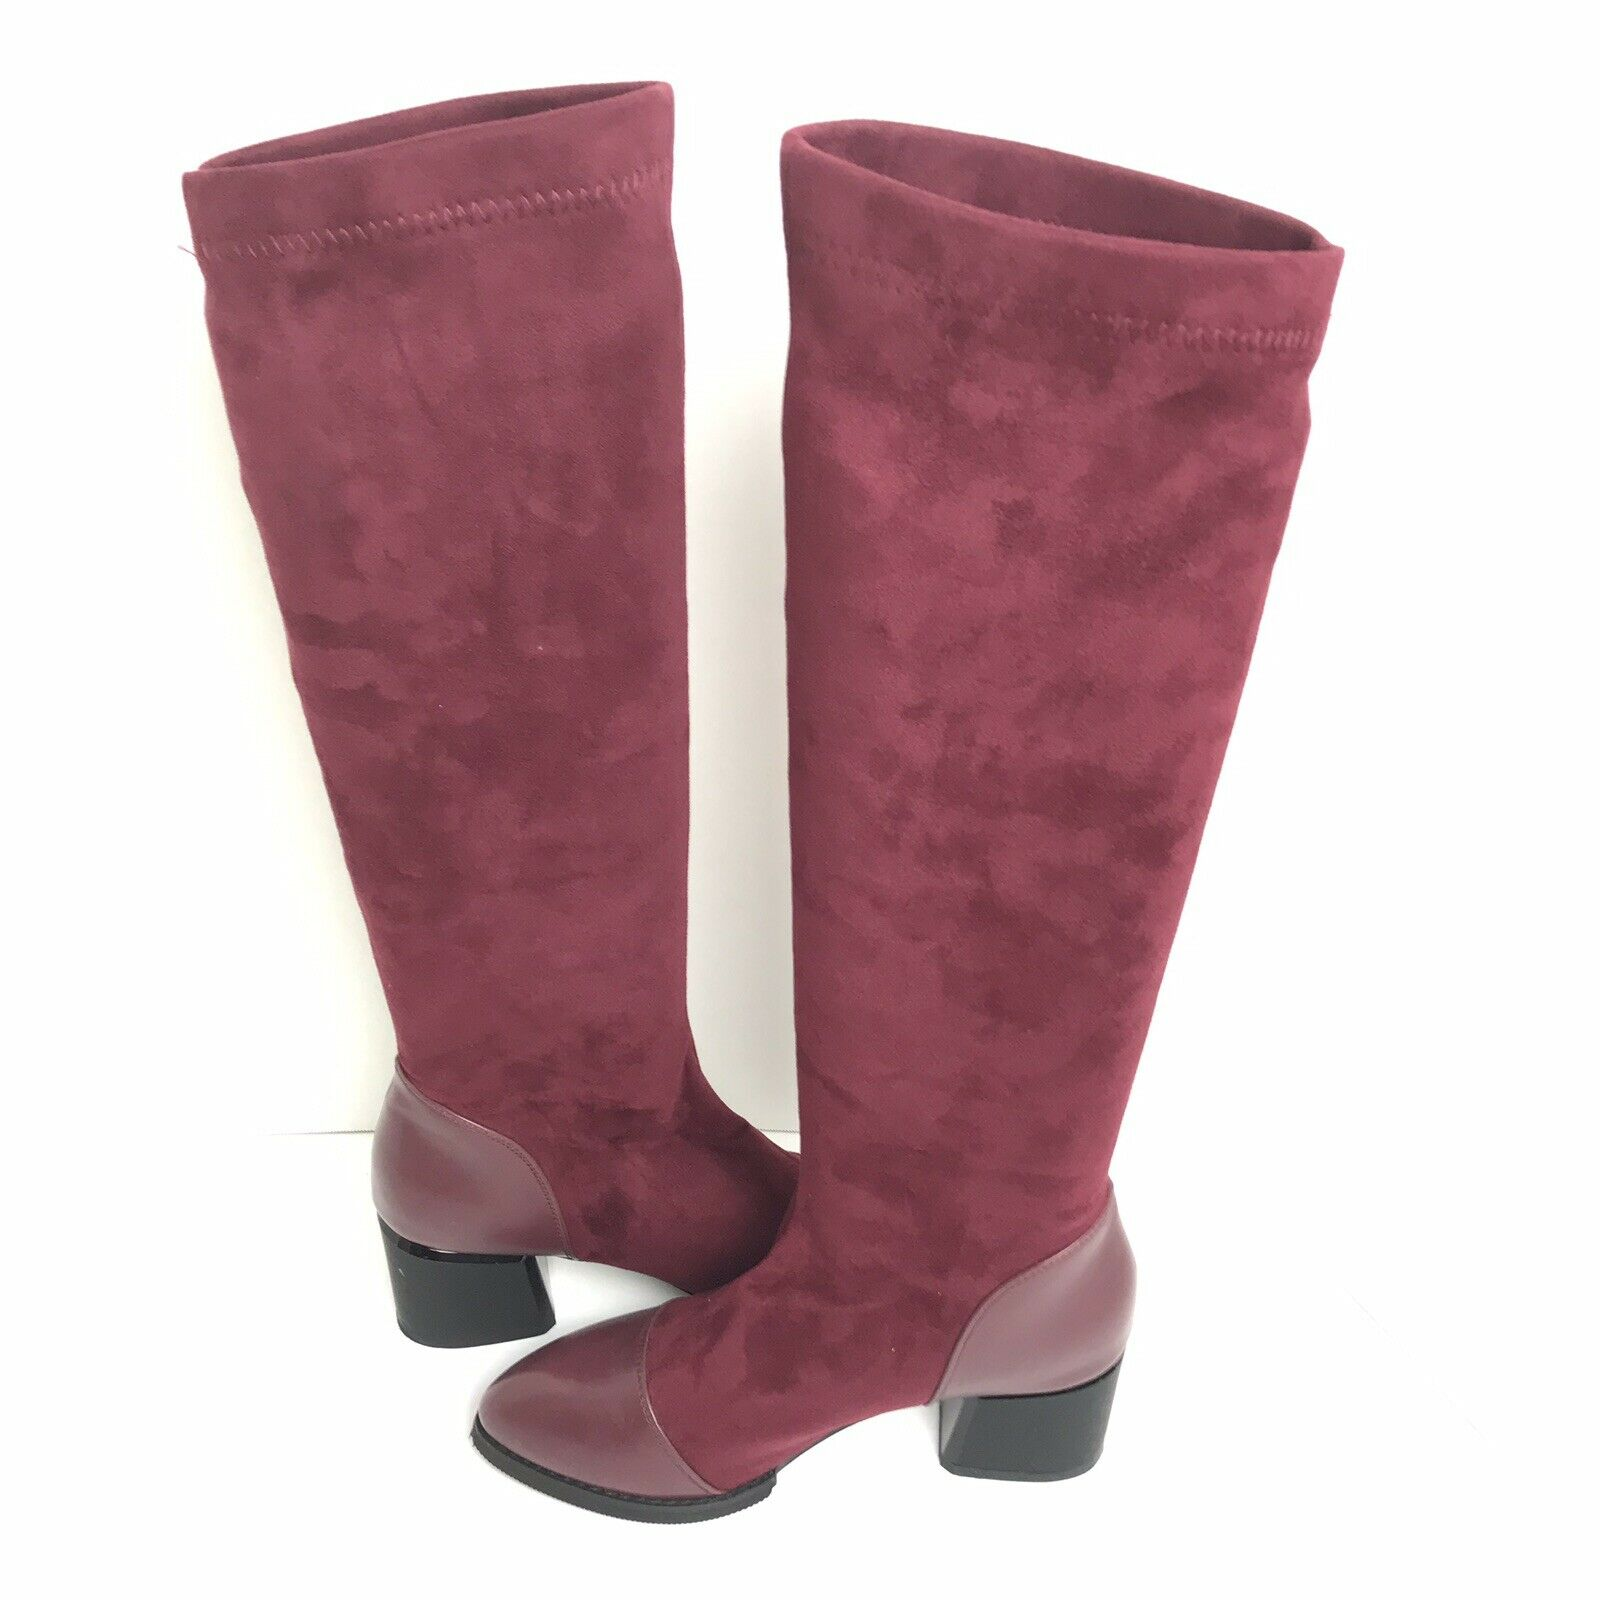 Boots Faux Suede Leather Tall Stretch Dress Magenta Boots  115MSRP NWOB 37